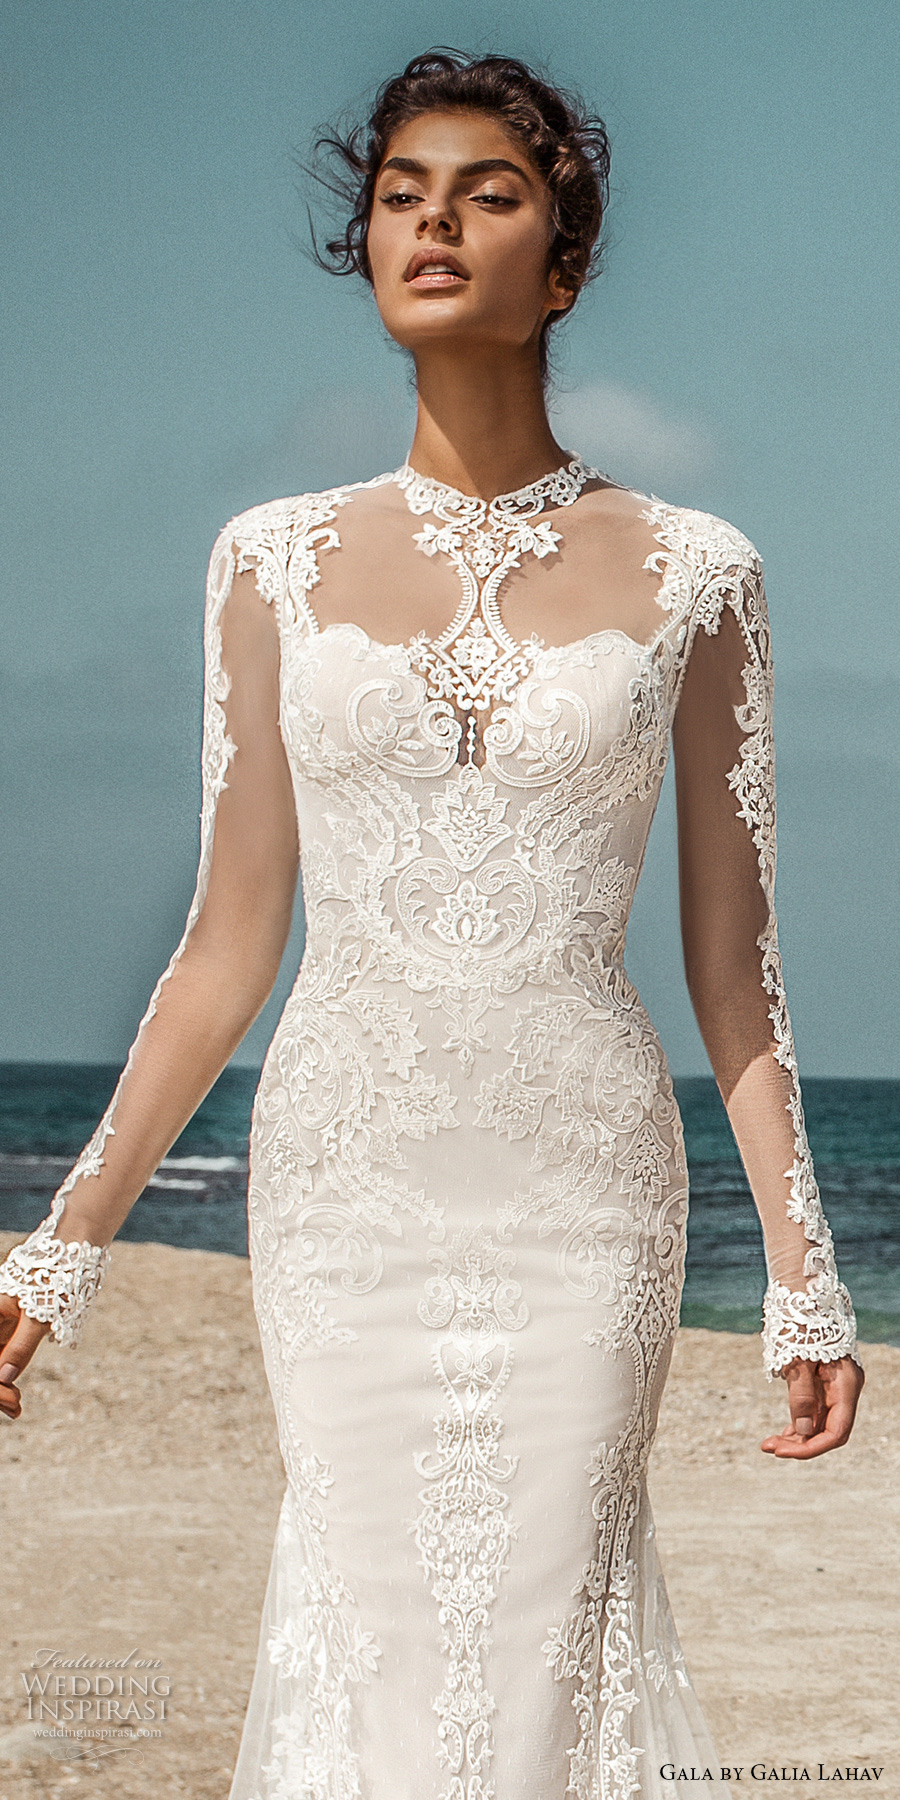 galia lahav gala 2017 bridal long sleeves illusion high jewel sweetheart neckline heavily embellished bodic elegant lace fit and flare wedding dress open low back sweep train (801) zv